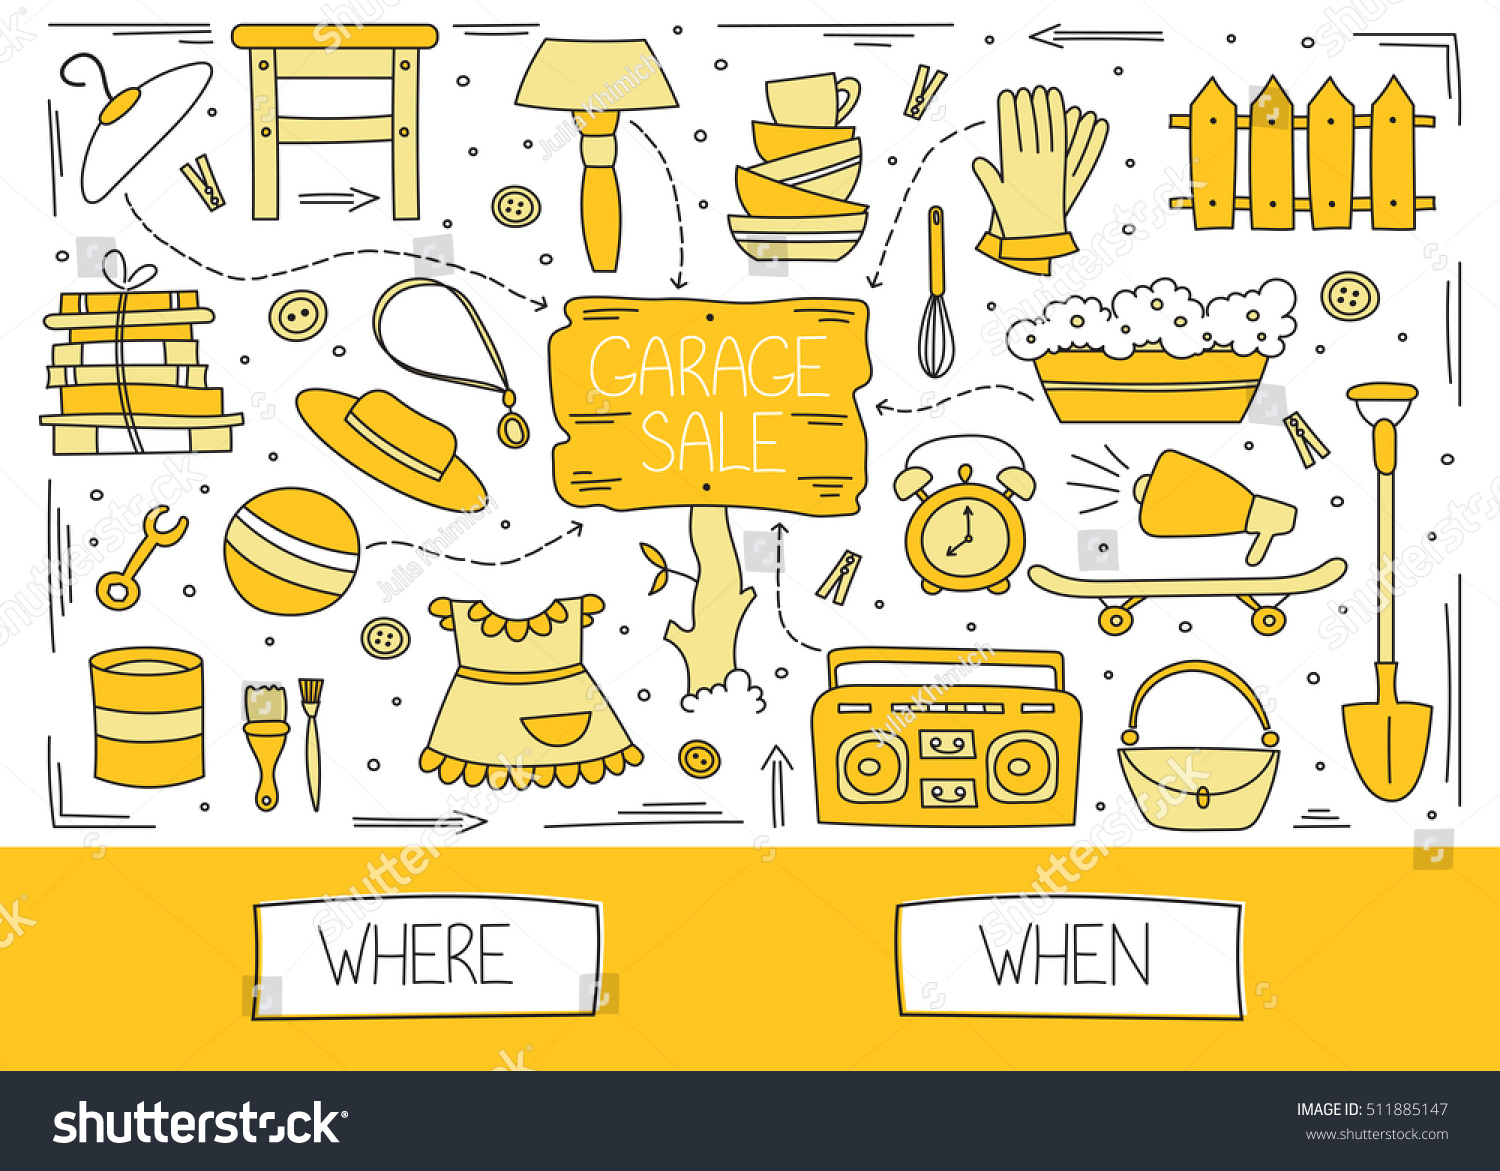 Garage Sale Website Garage Sale Household Used Goods Hand Stock Vector Royalty Free